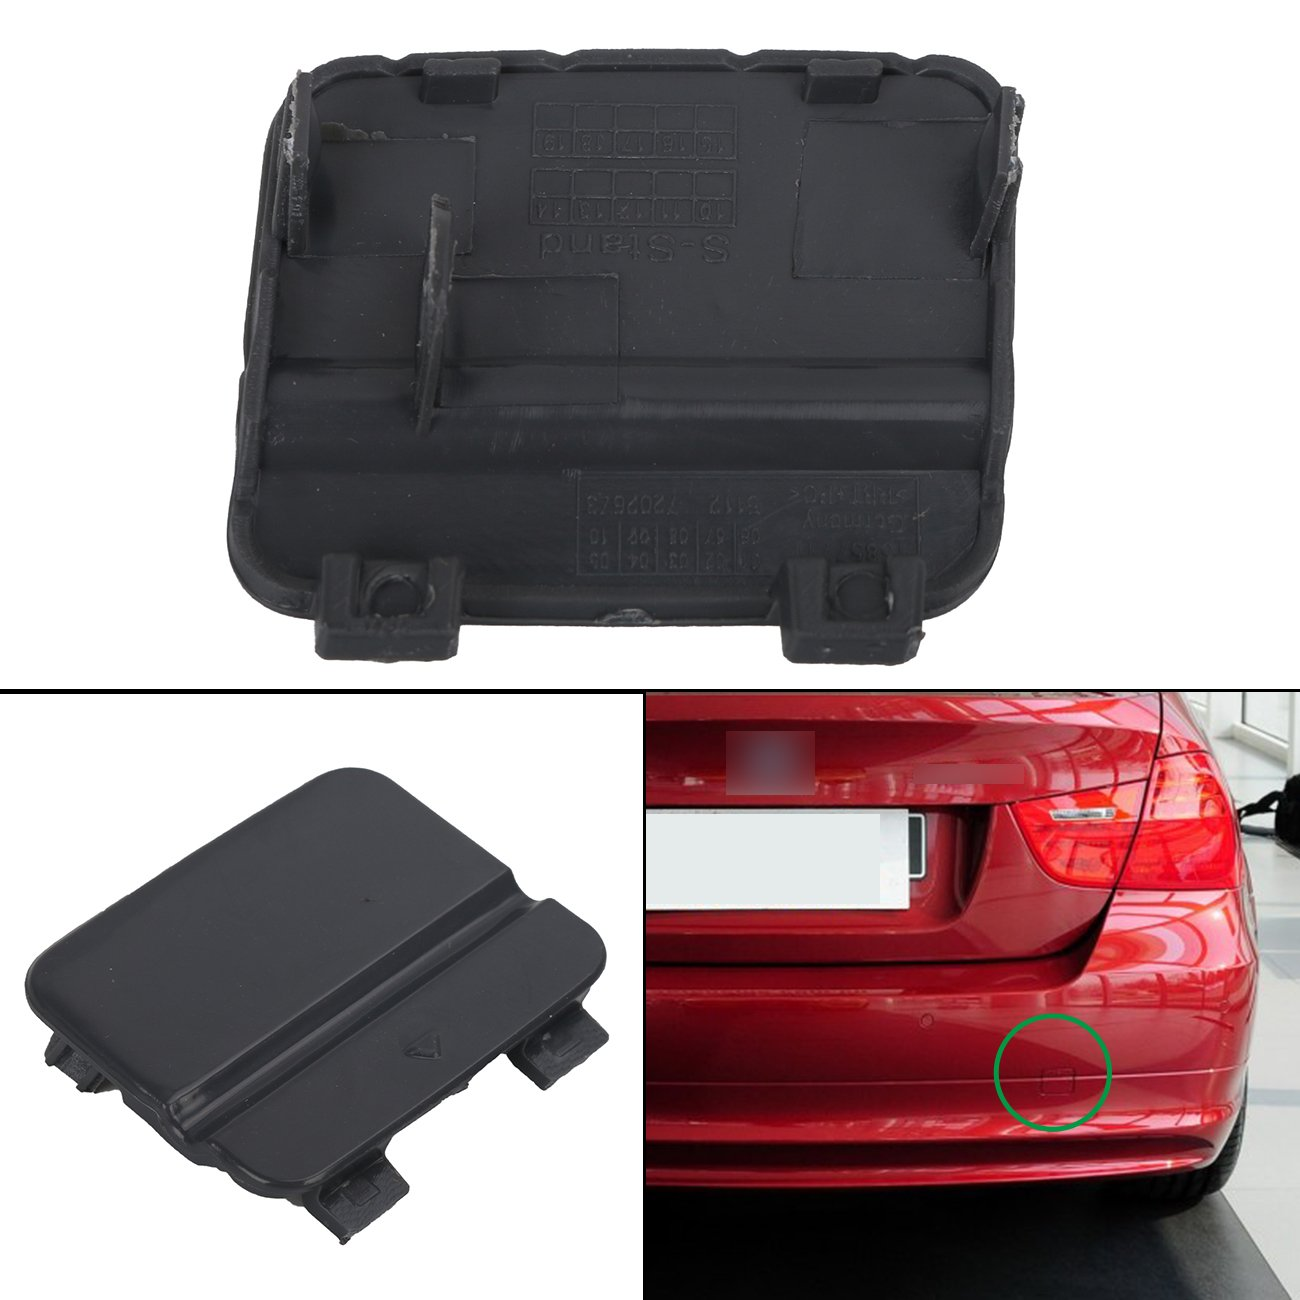 General Mega Rear Bumper Tow Hook Cover//Towing Eye Cap for BMW 3-Series E90 2009-2011 Black Primed